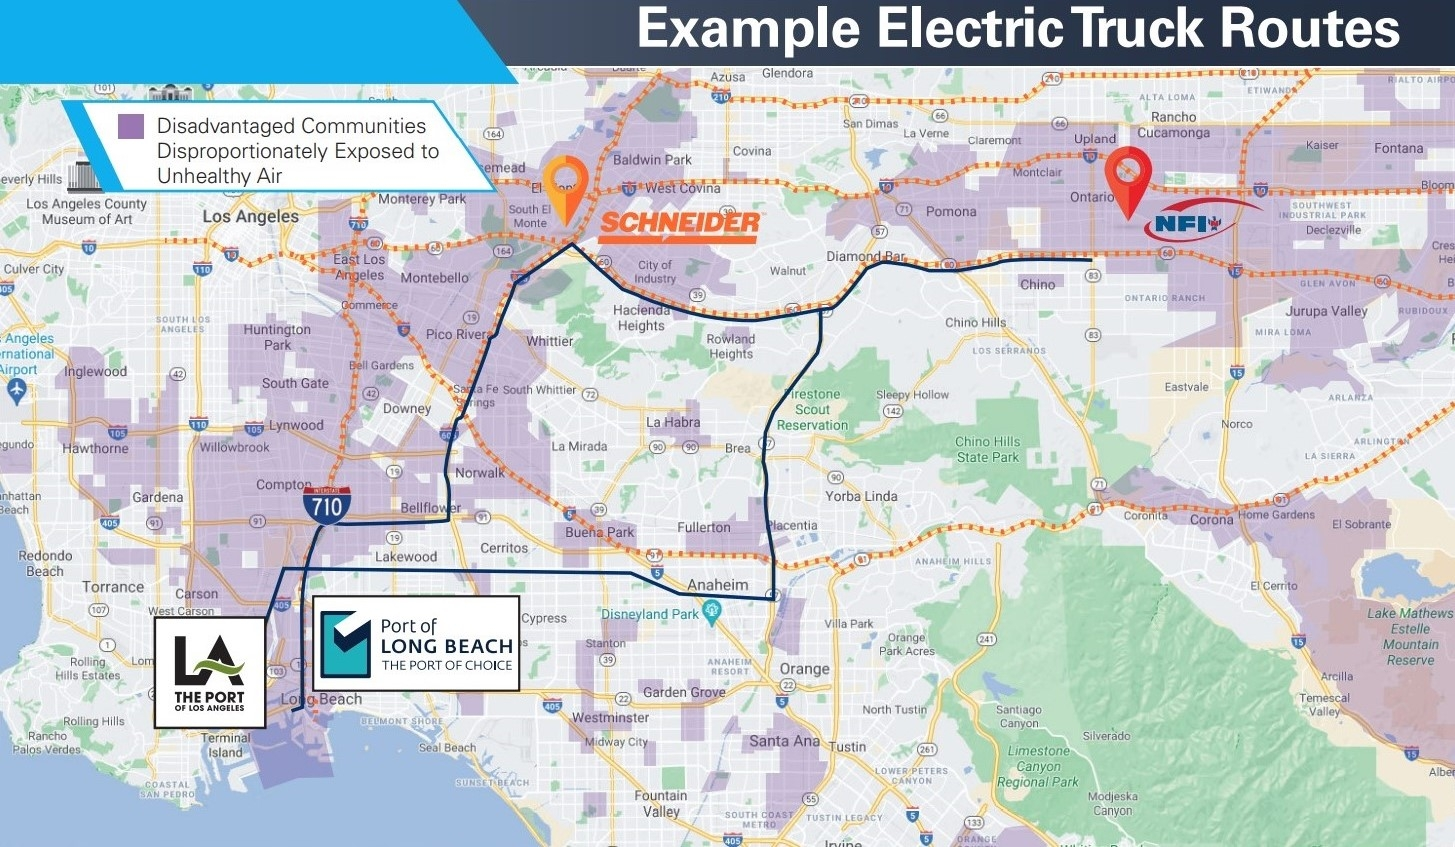 The electric trucks will benefit environmentally-impacted communities near highways, warehouses and intermodal rail yards that serve the twin ports of Los Angeles and Long Beach.